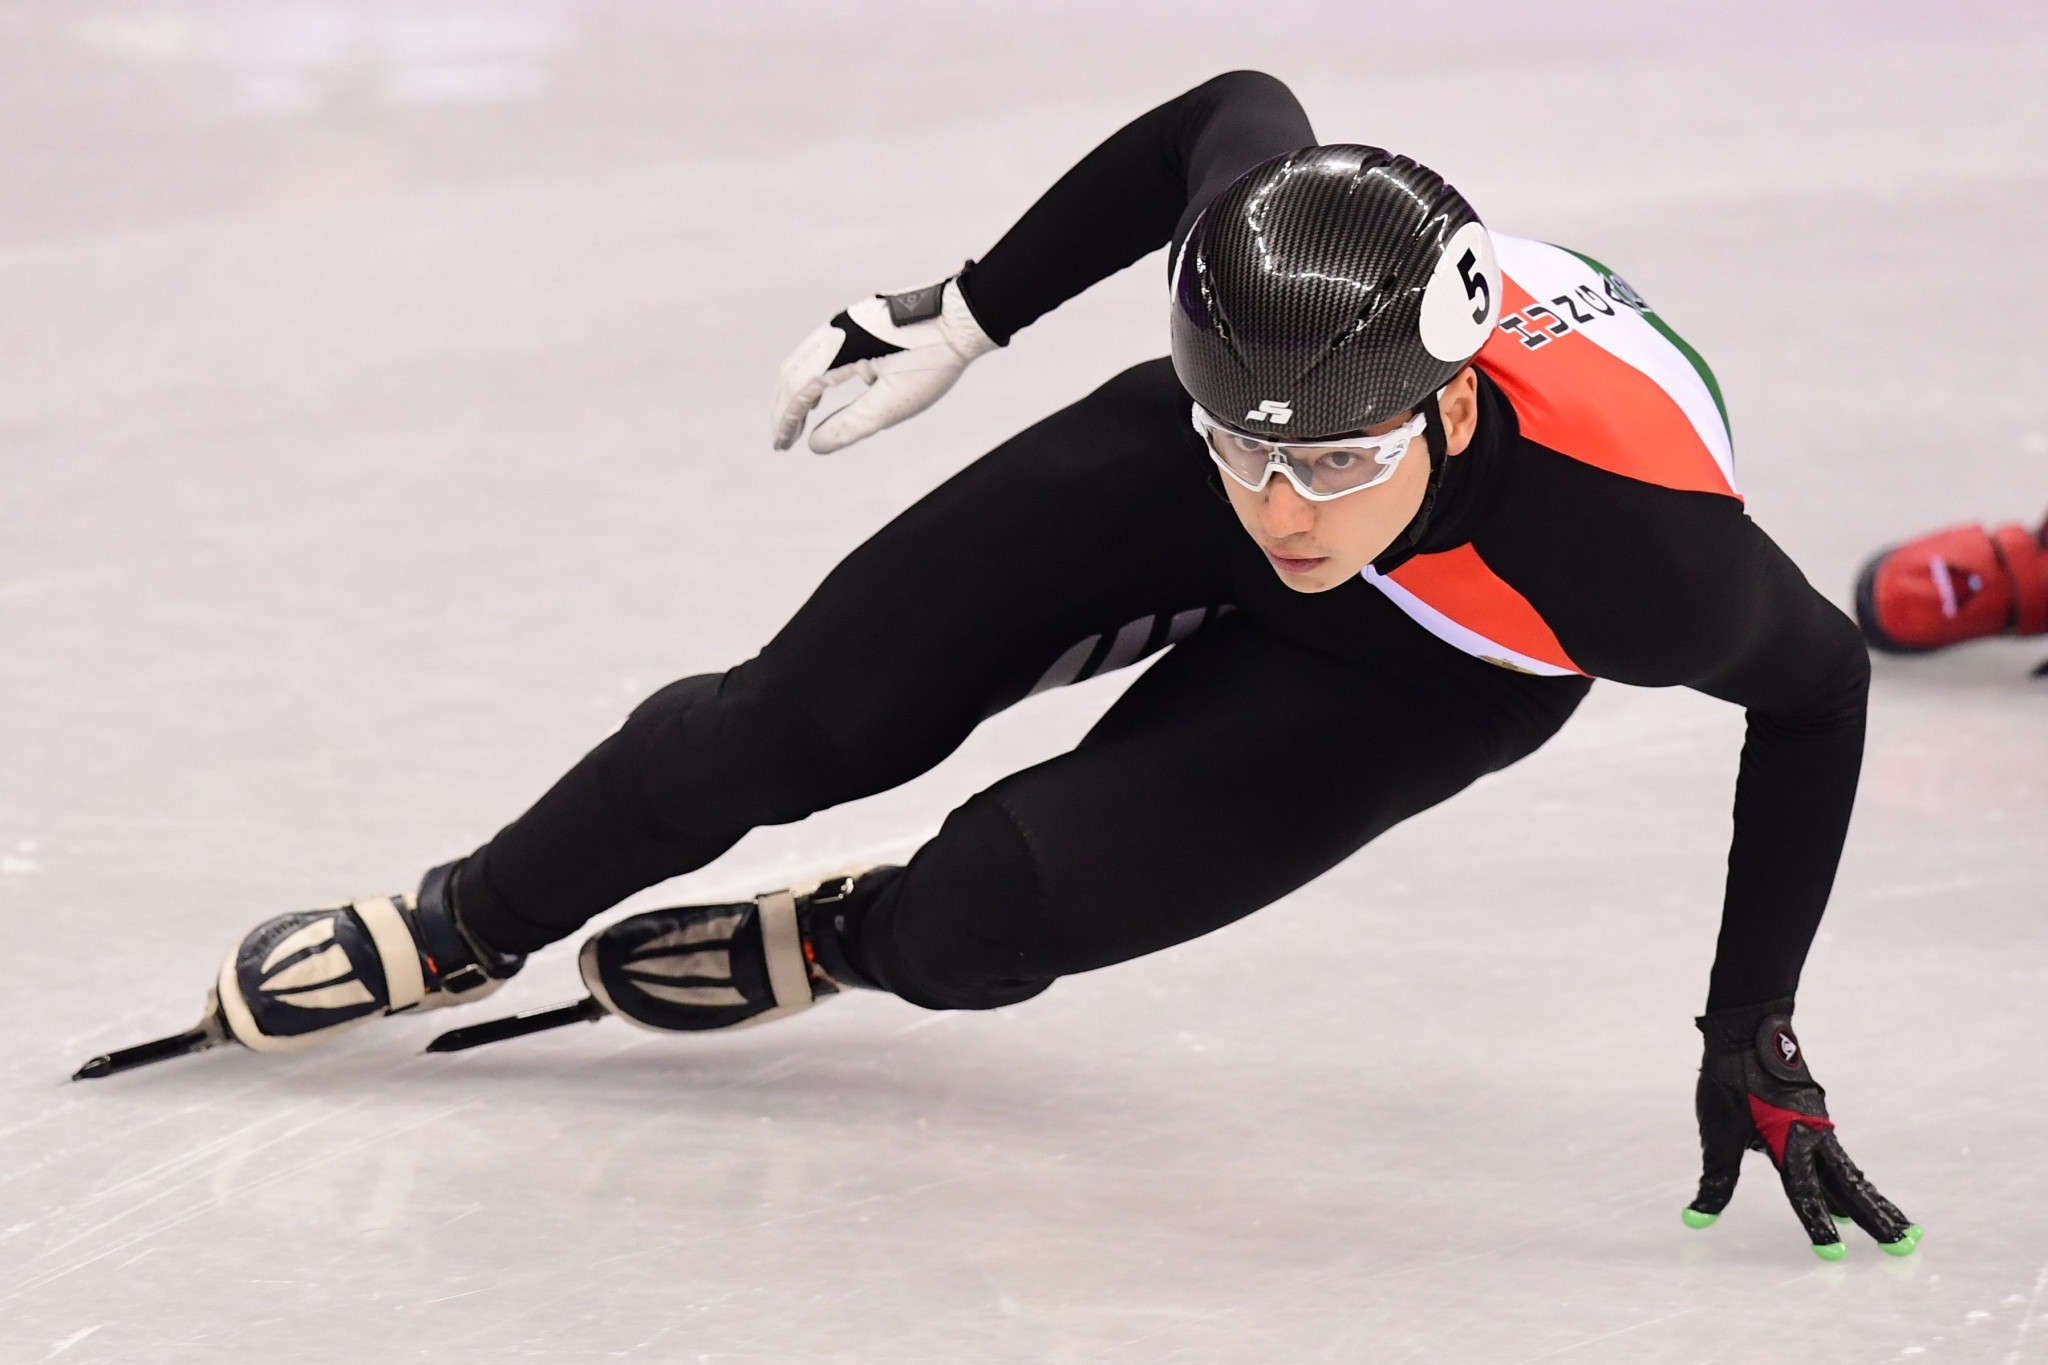 South Korea and Hungary star in 1,000m races at Beijing Short Track World Cup